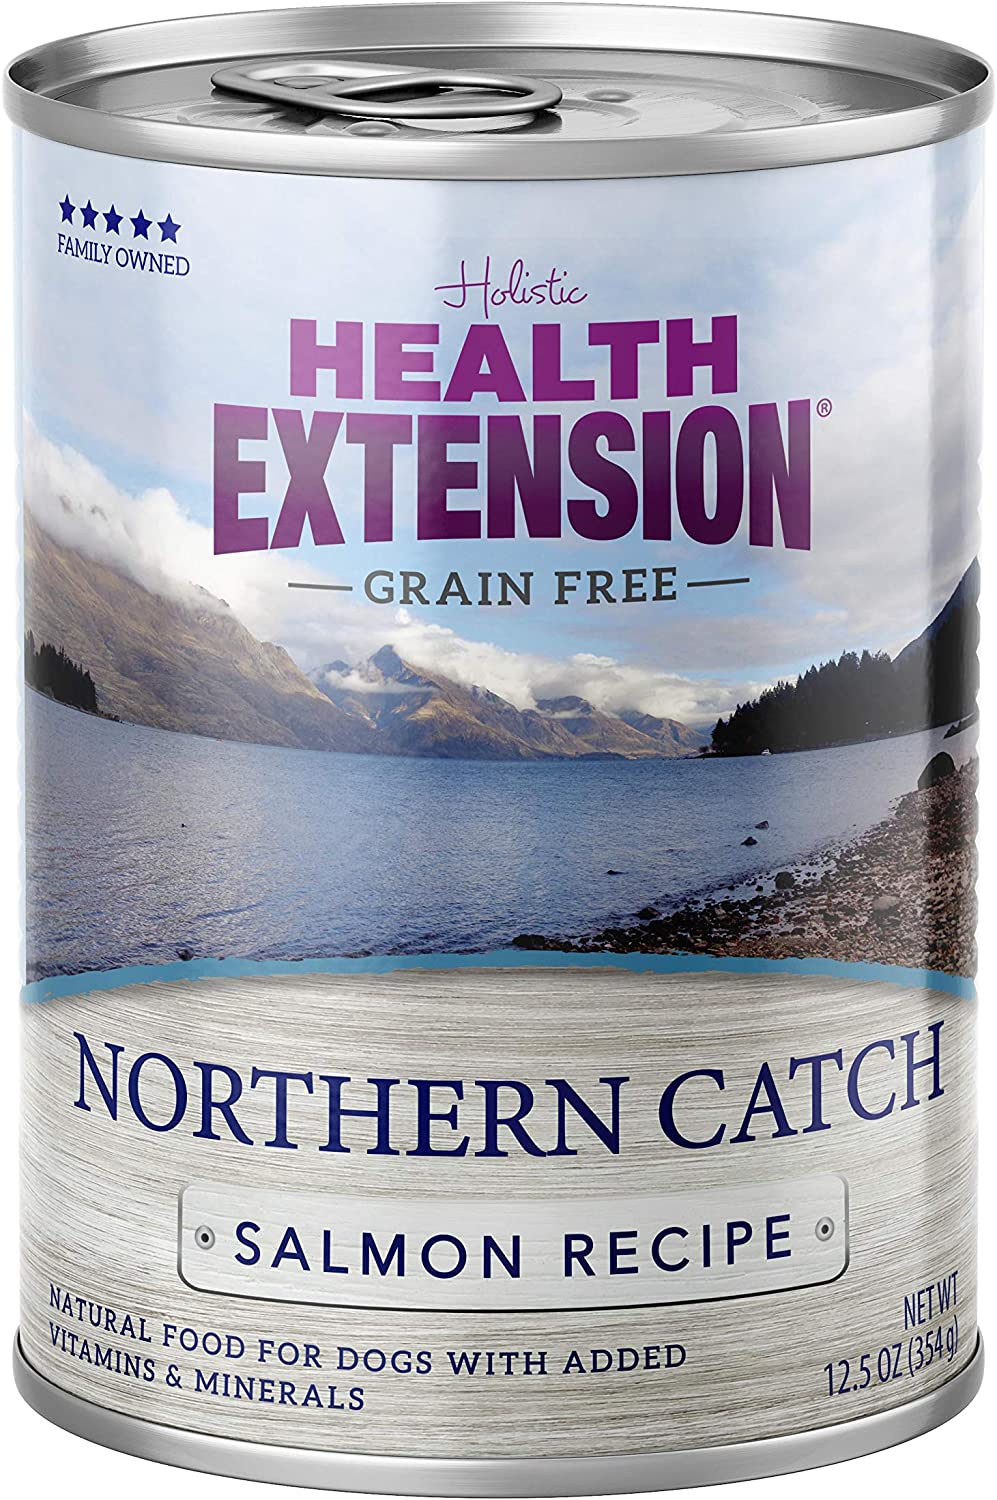 Health Extension Grain Free Northern Catch Canned Wet Dog Food - (12) 12.5 Oz Cans